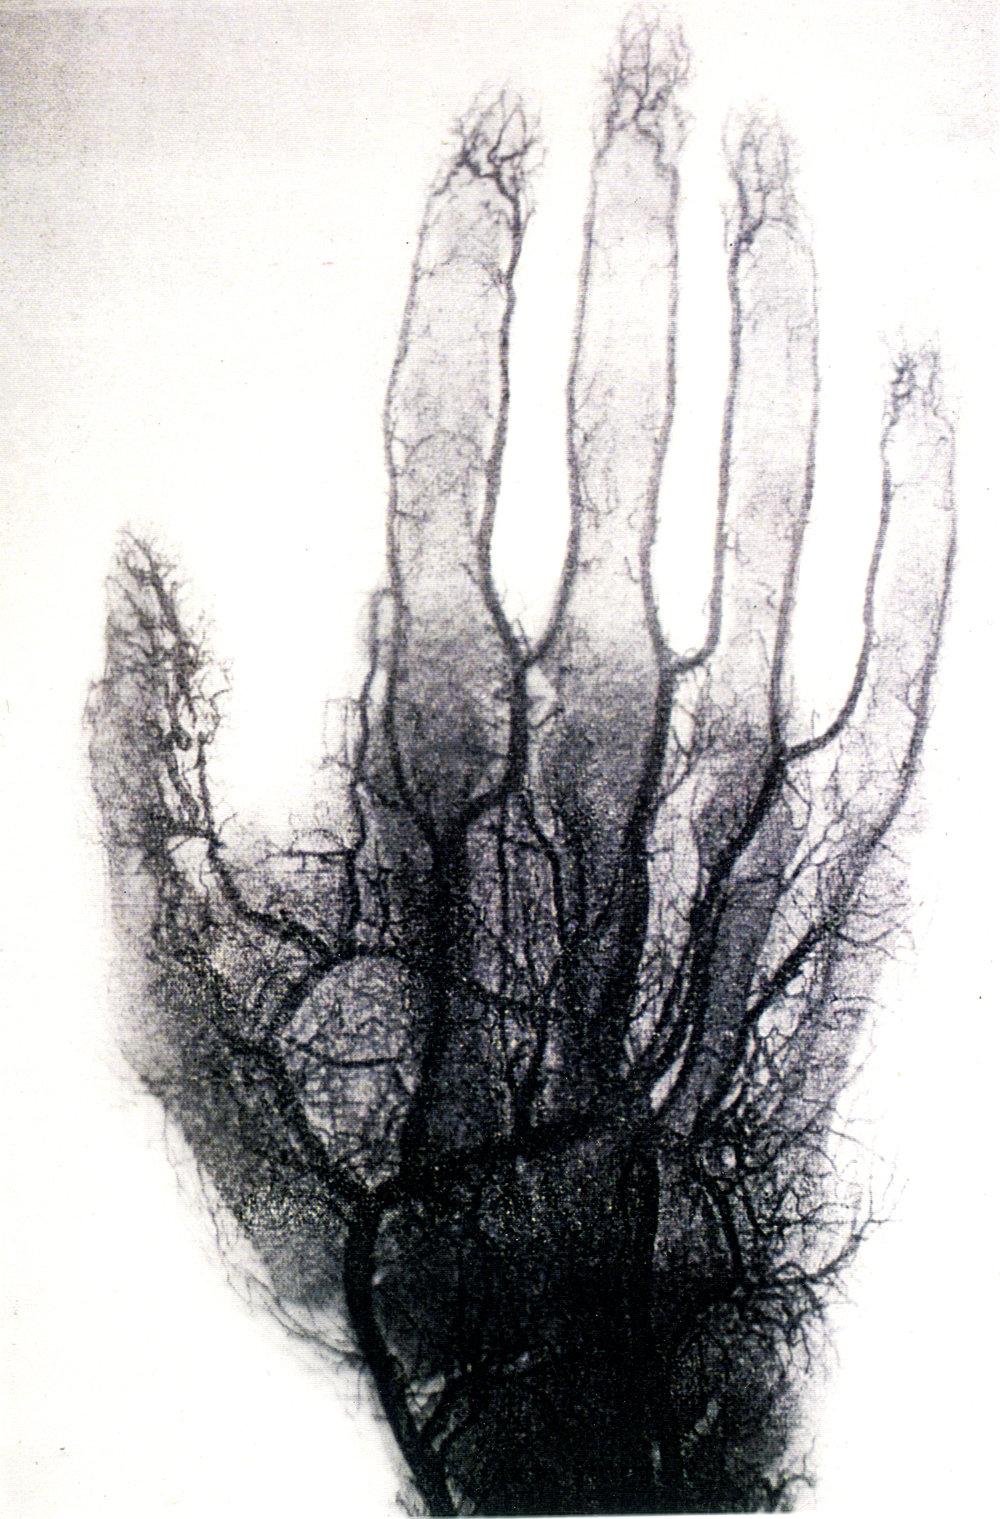 x-ray blood vessels copy.jpg